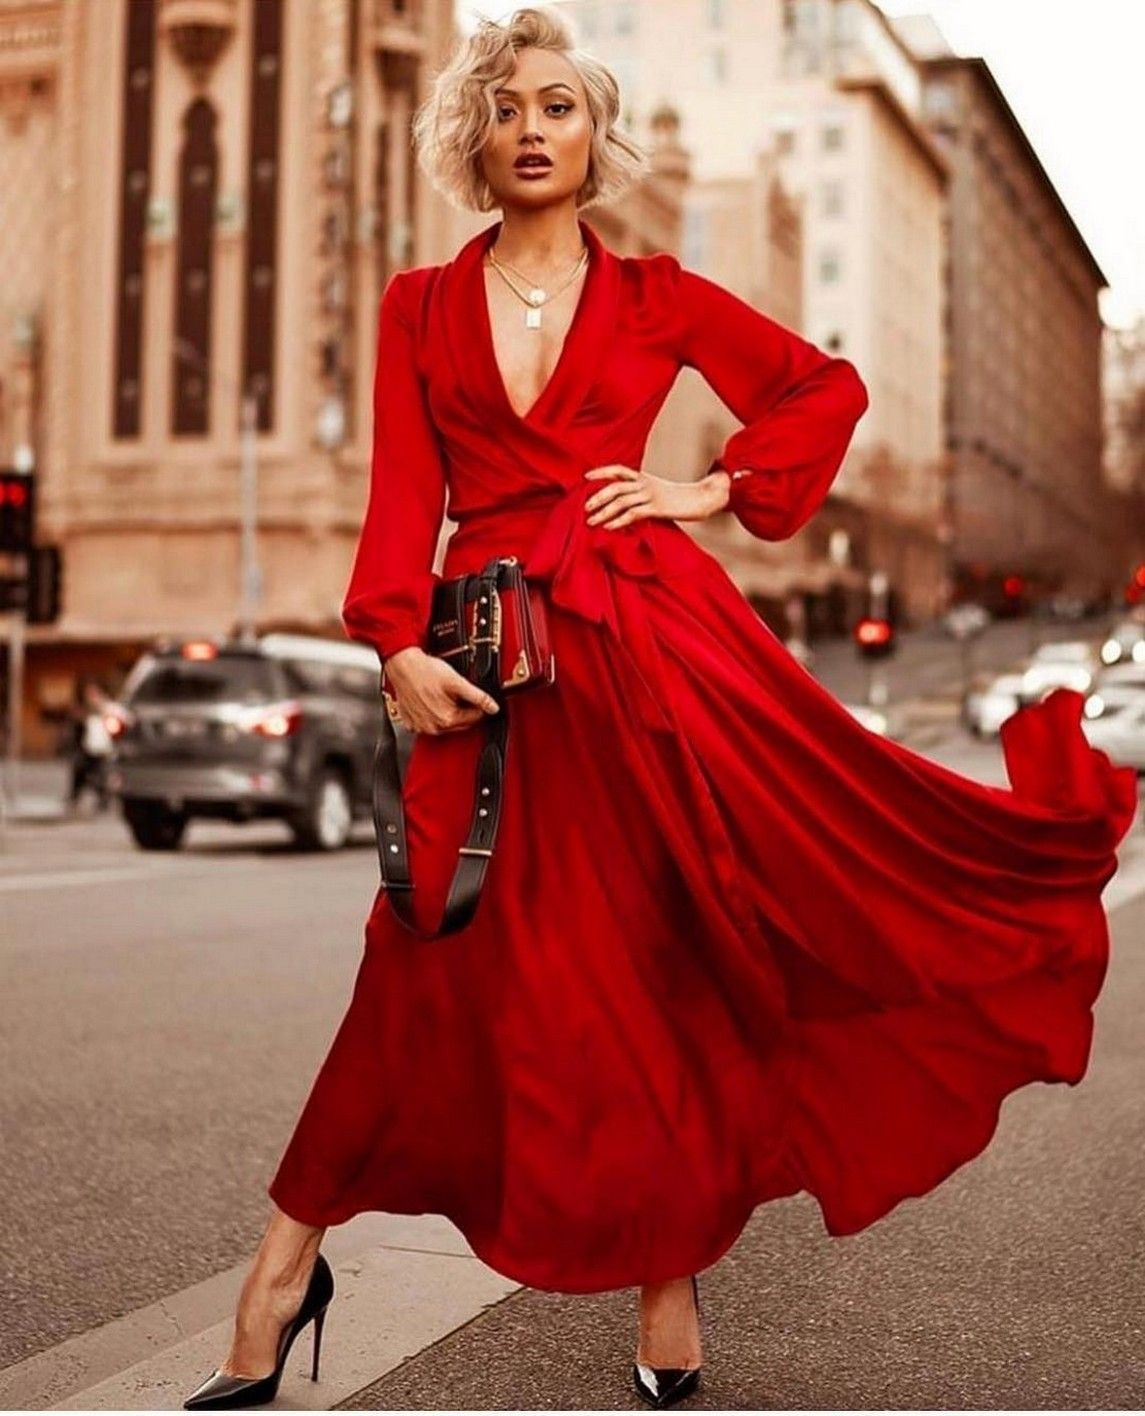 The 60 Uncanny Power Of The Woman Wearing In Red In 2020 Elegant Wrap Dress Fashion Dress Fashion Photography